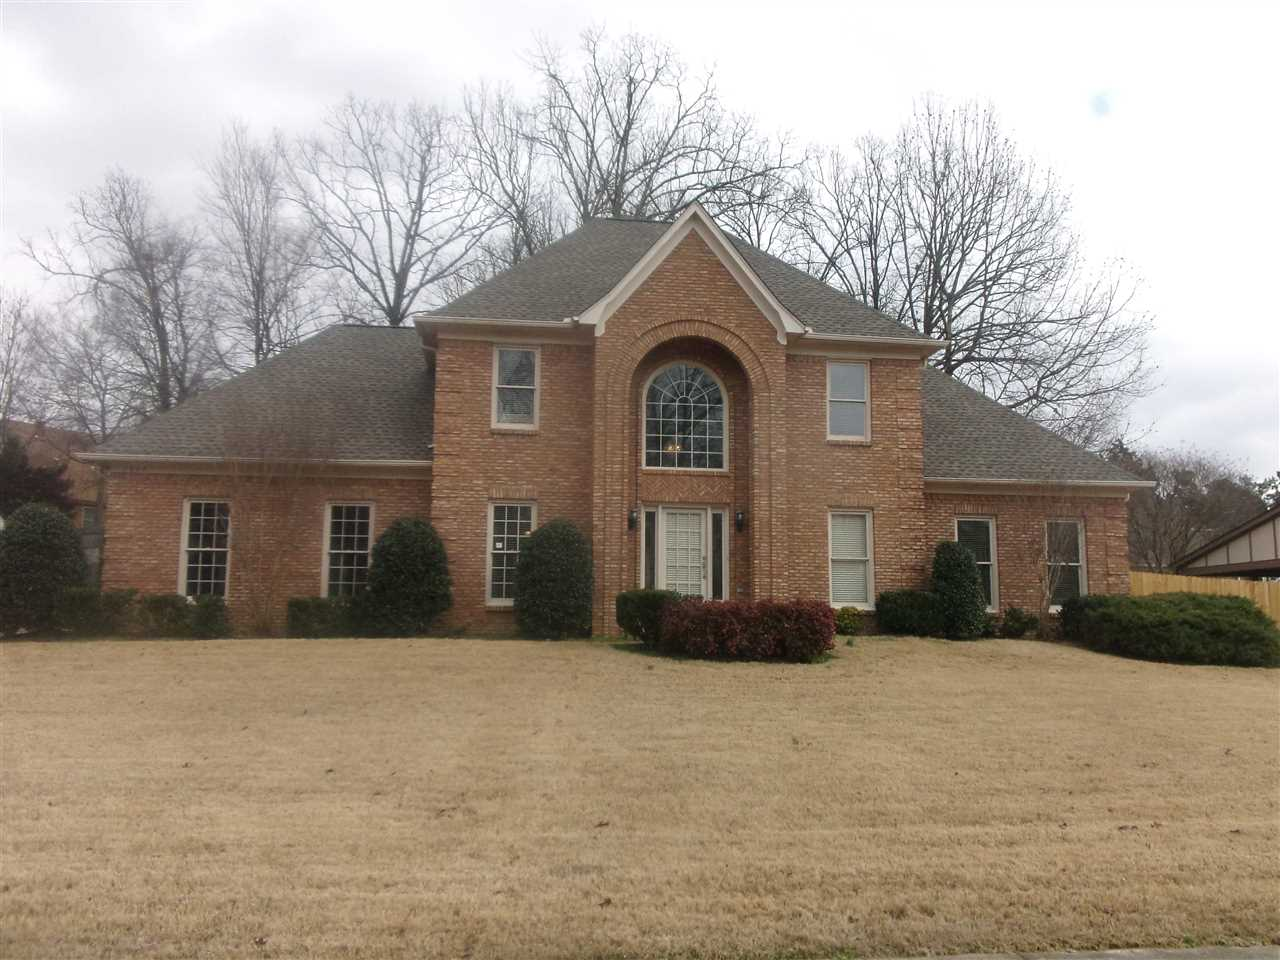 2664 Misty Brook Dr, Cordova, TN